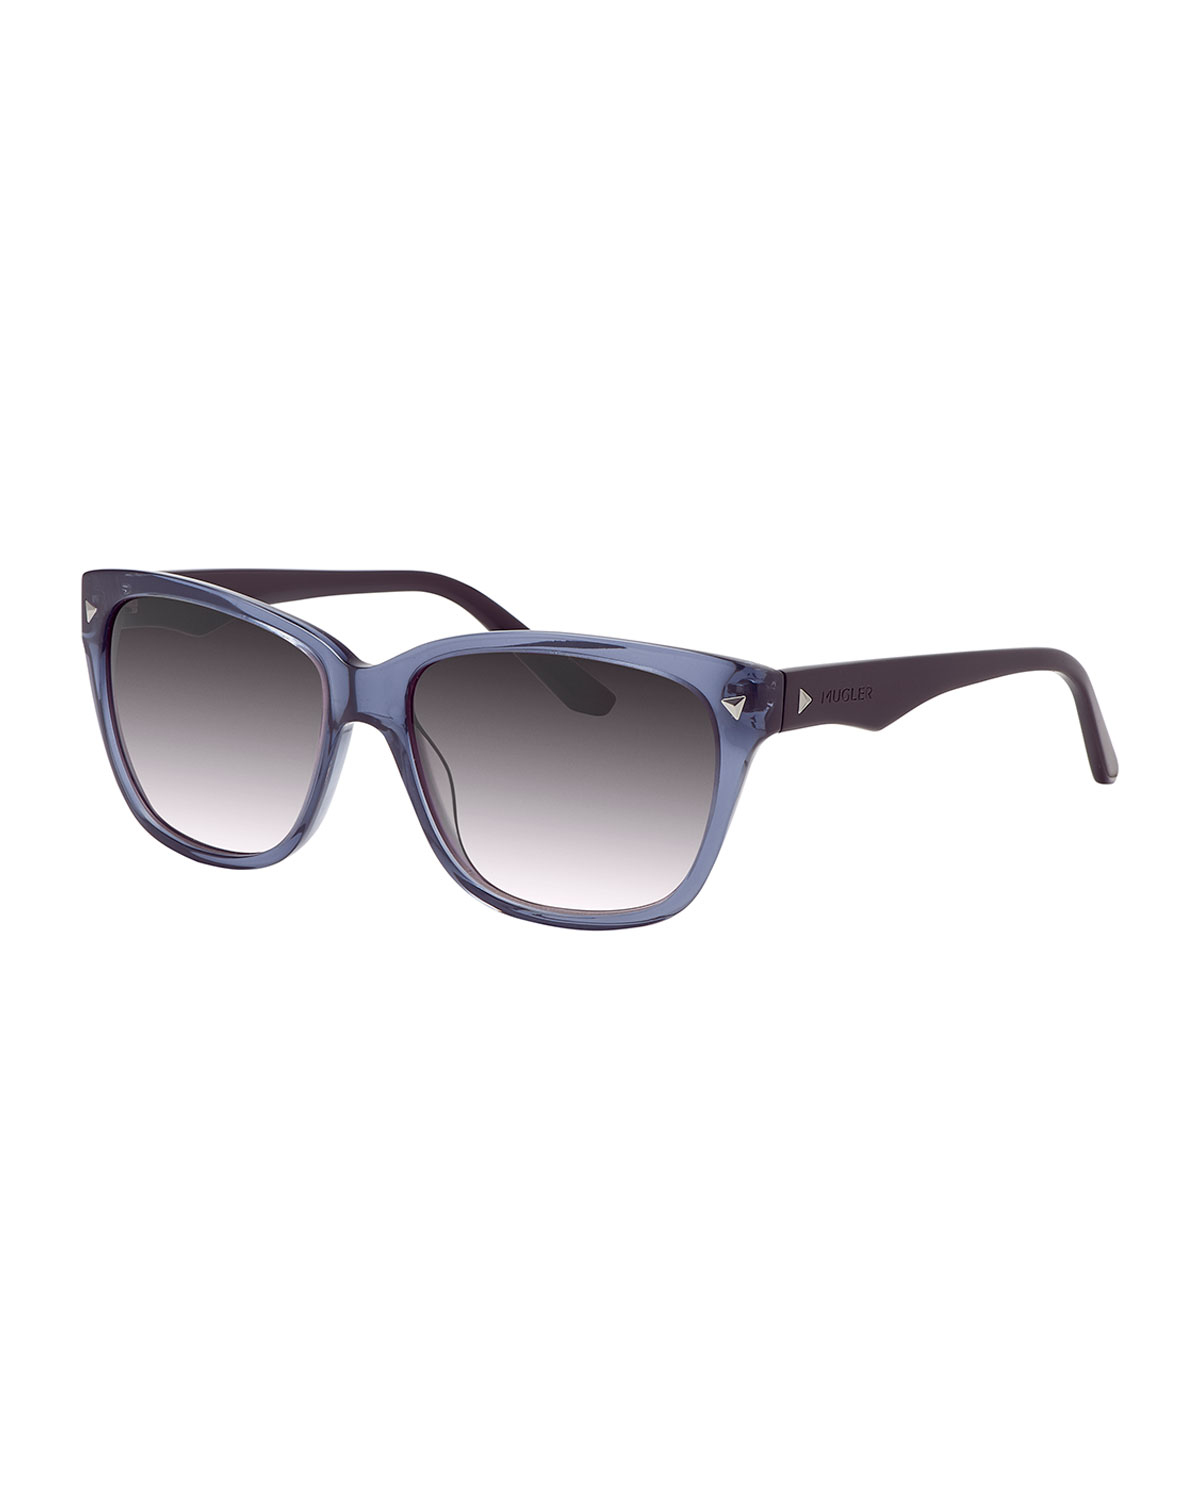 4c731ac89231d Thierry Mugler Studded Two-tone Square Plastic Sunglasses in Blue - Lyst